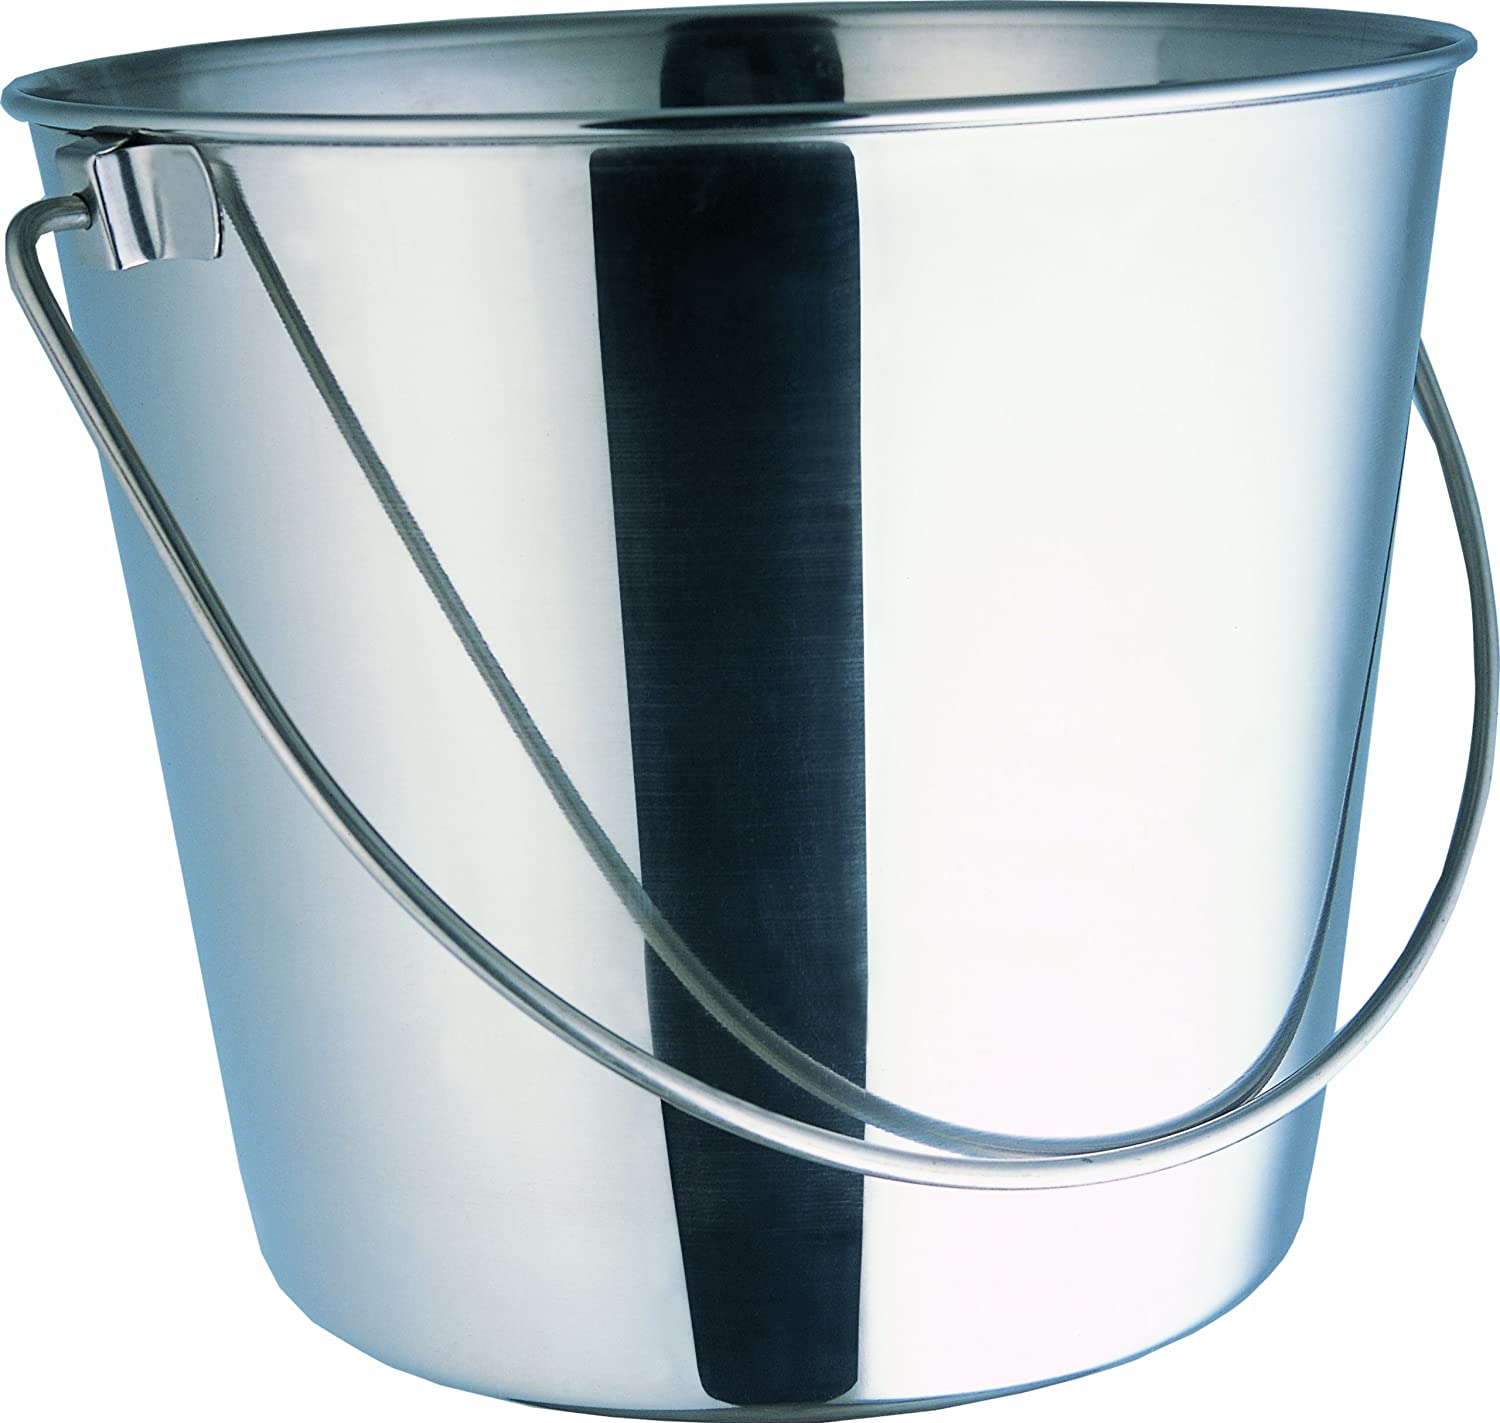 Indipets Heavy Duty Stainless Steel Pail, 2 quart, 6.1 x 5.8 x 6.1 Indipets Inc 800100